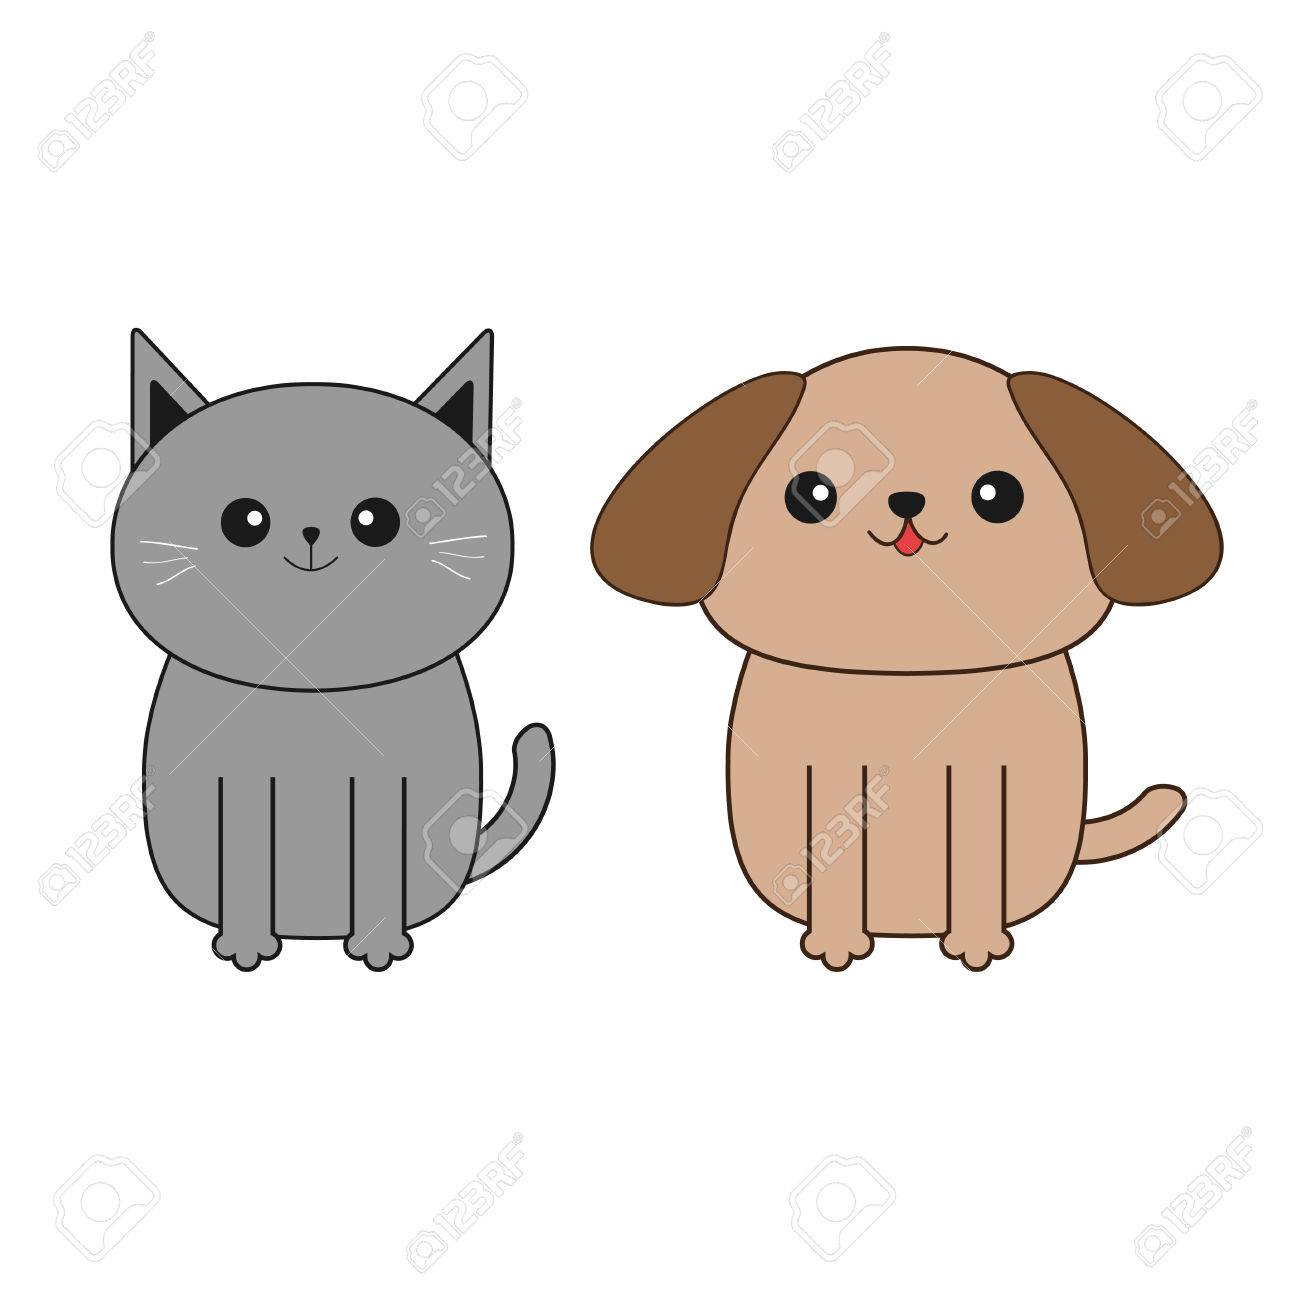 Cartoon Dog And Cat Mustache Whisker Funny Smiling Character Royalty Free Cliparts Vectors And Stock Illustration Image 63989786